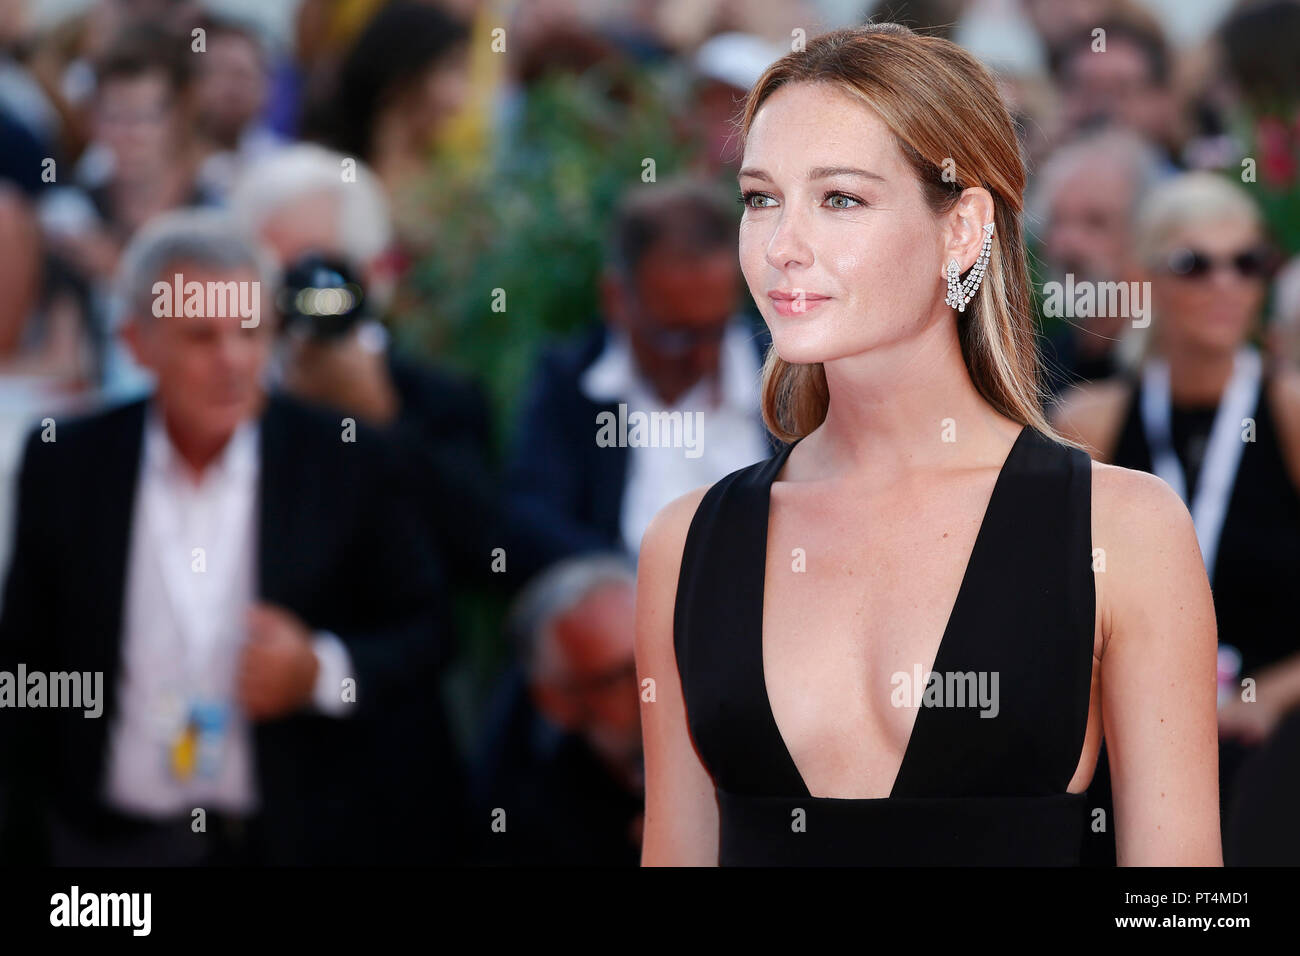 VENICE, ITALY - AUGUST 30: Cristiana Capotondi walks the red carpet of the movie 'The Favourite' during the 75th Venice Film Festival on August 30, 20 - Stock Image